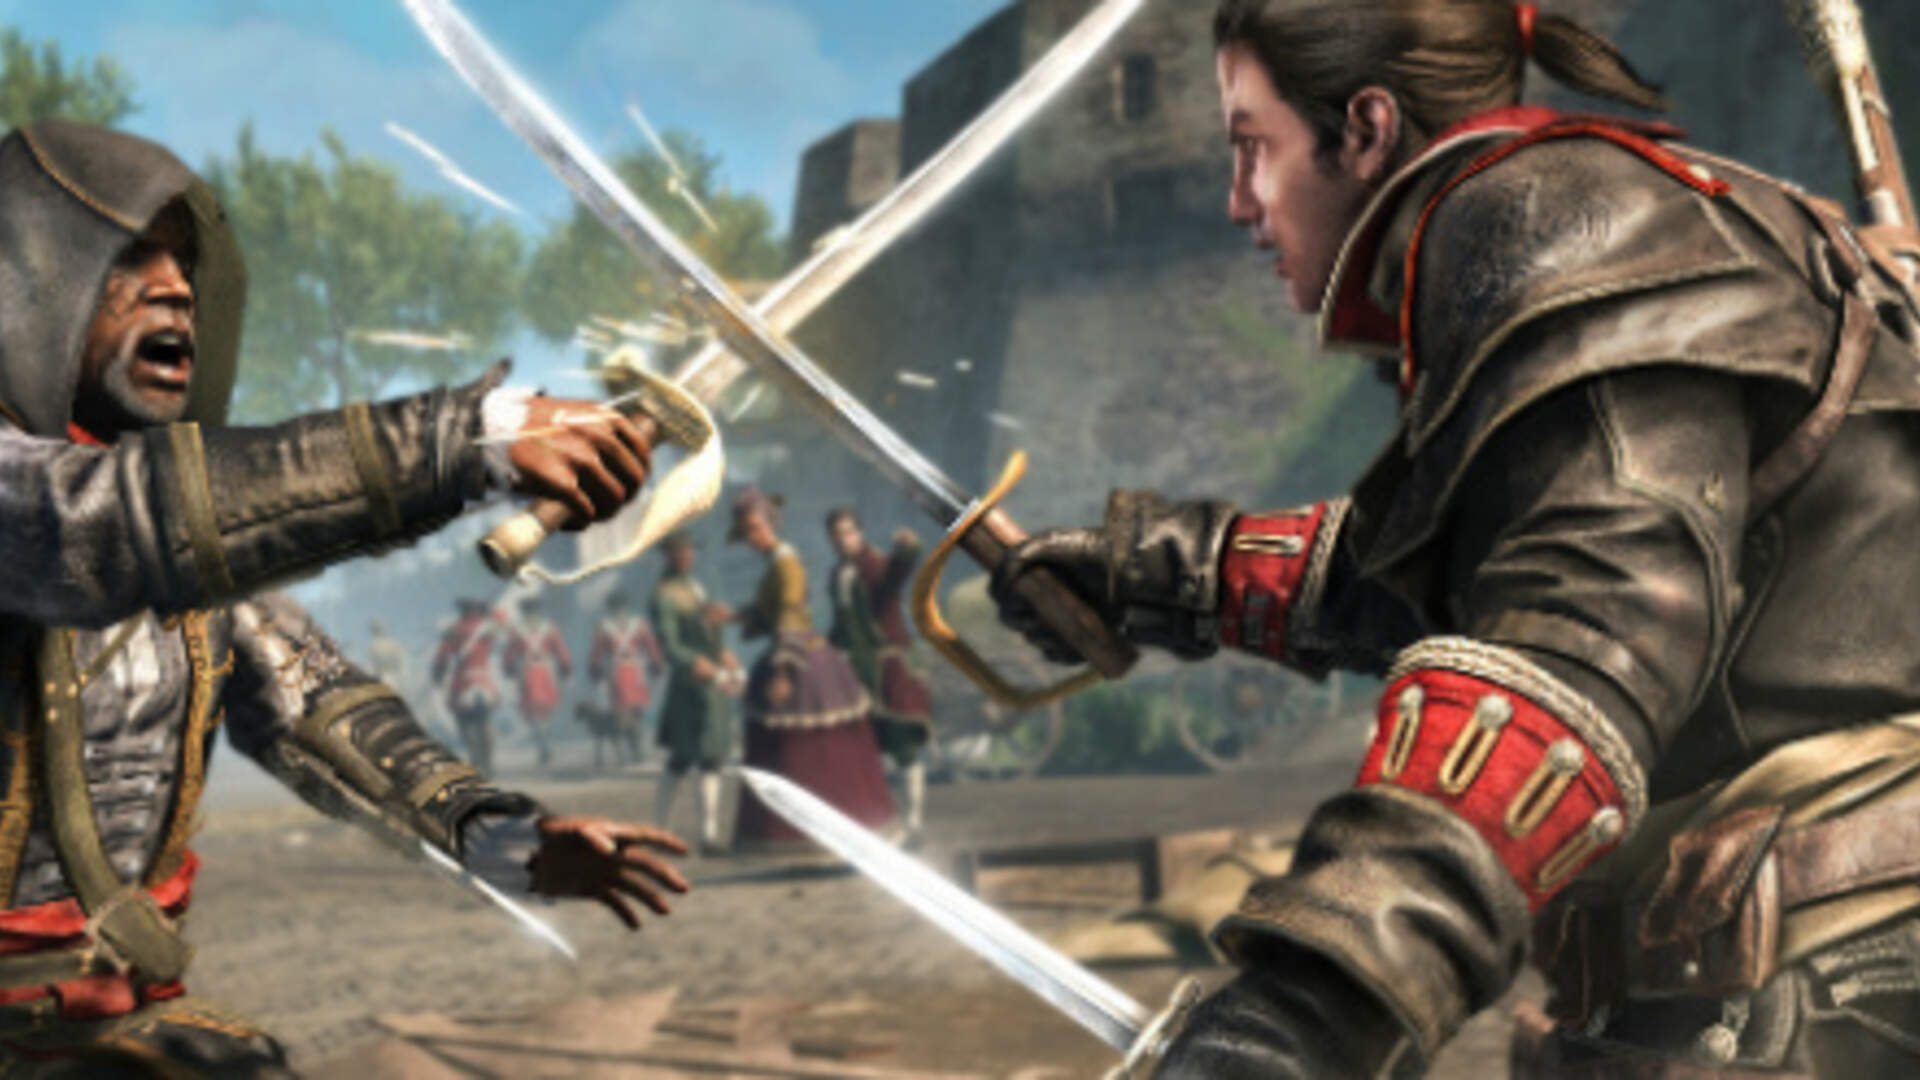 Assassin's Creed Rogue - The Video Review